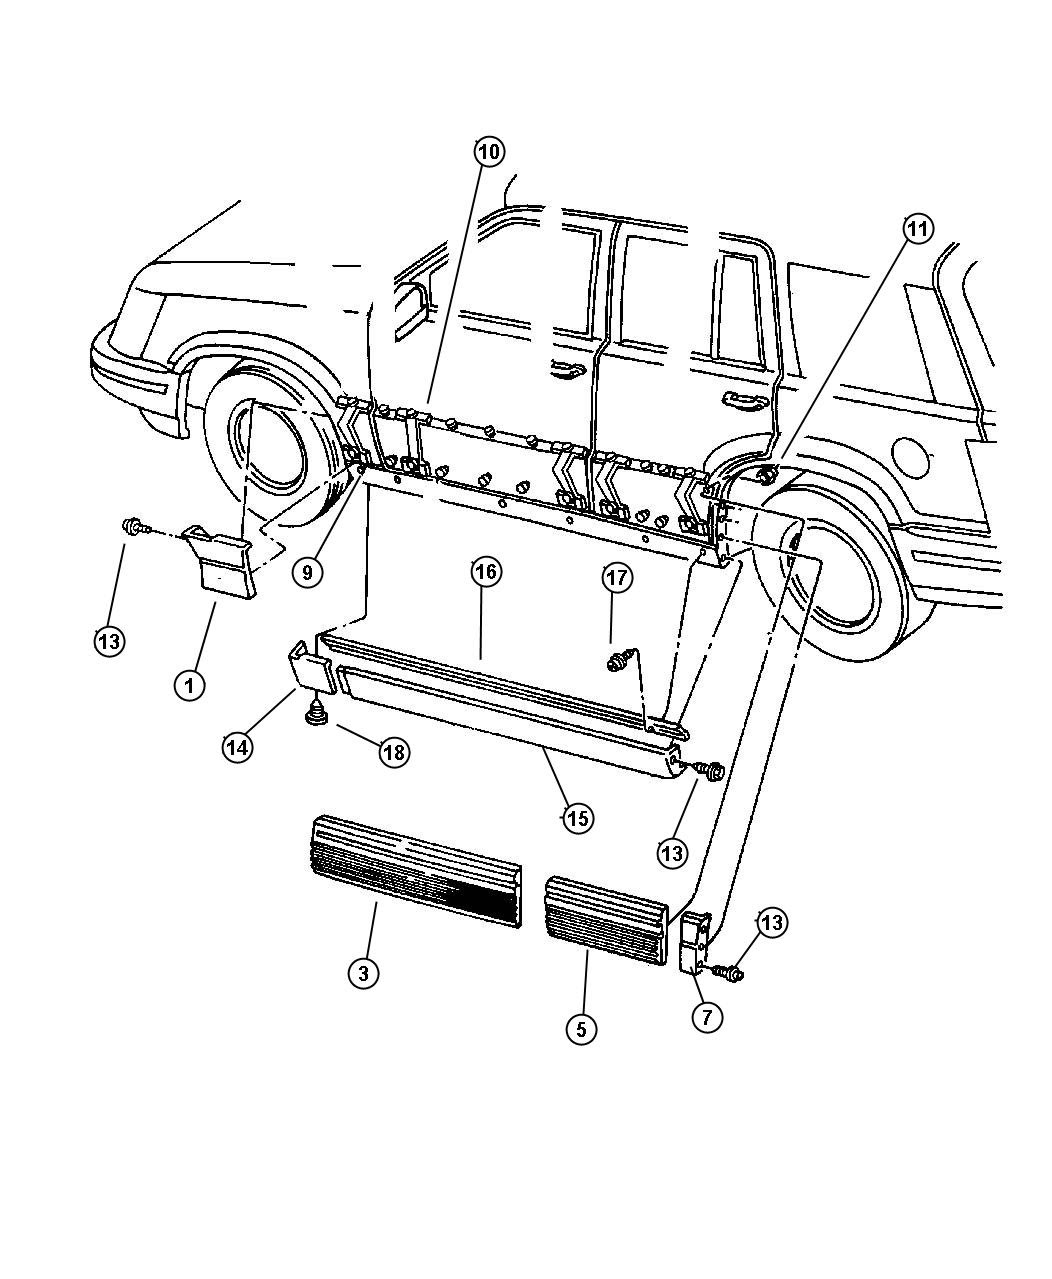 Toyota Tacoma Body Parts Diagram ~ Best Toyota